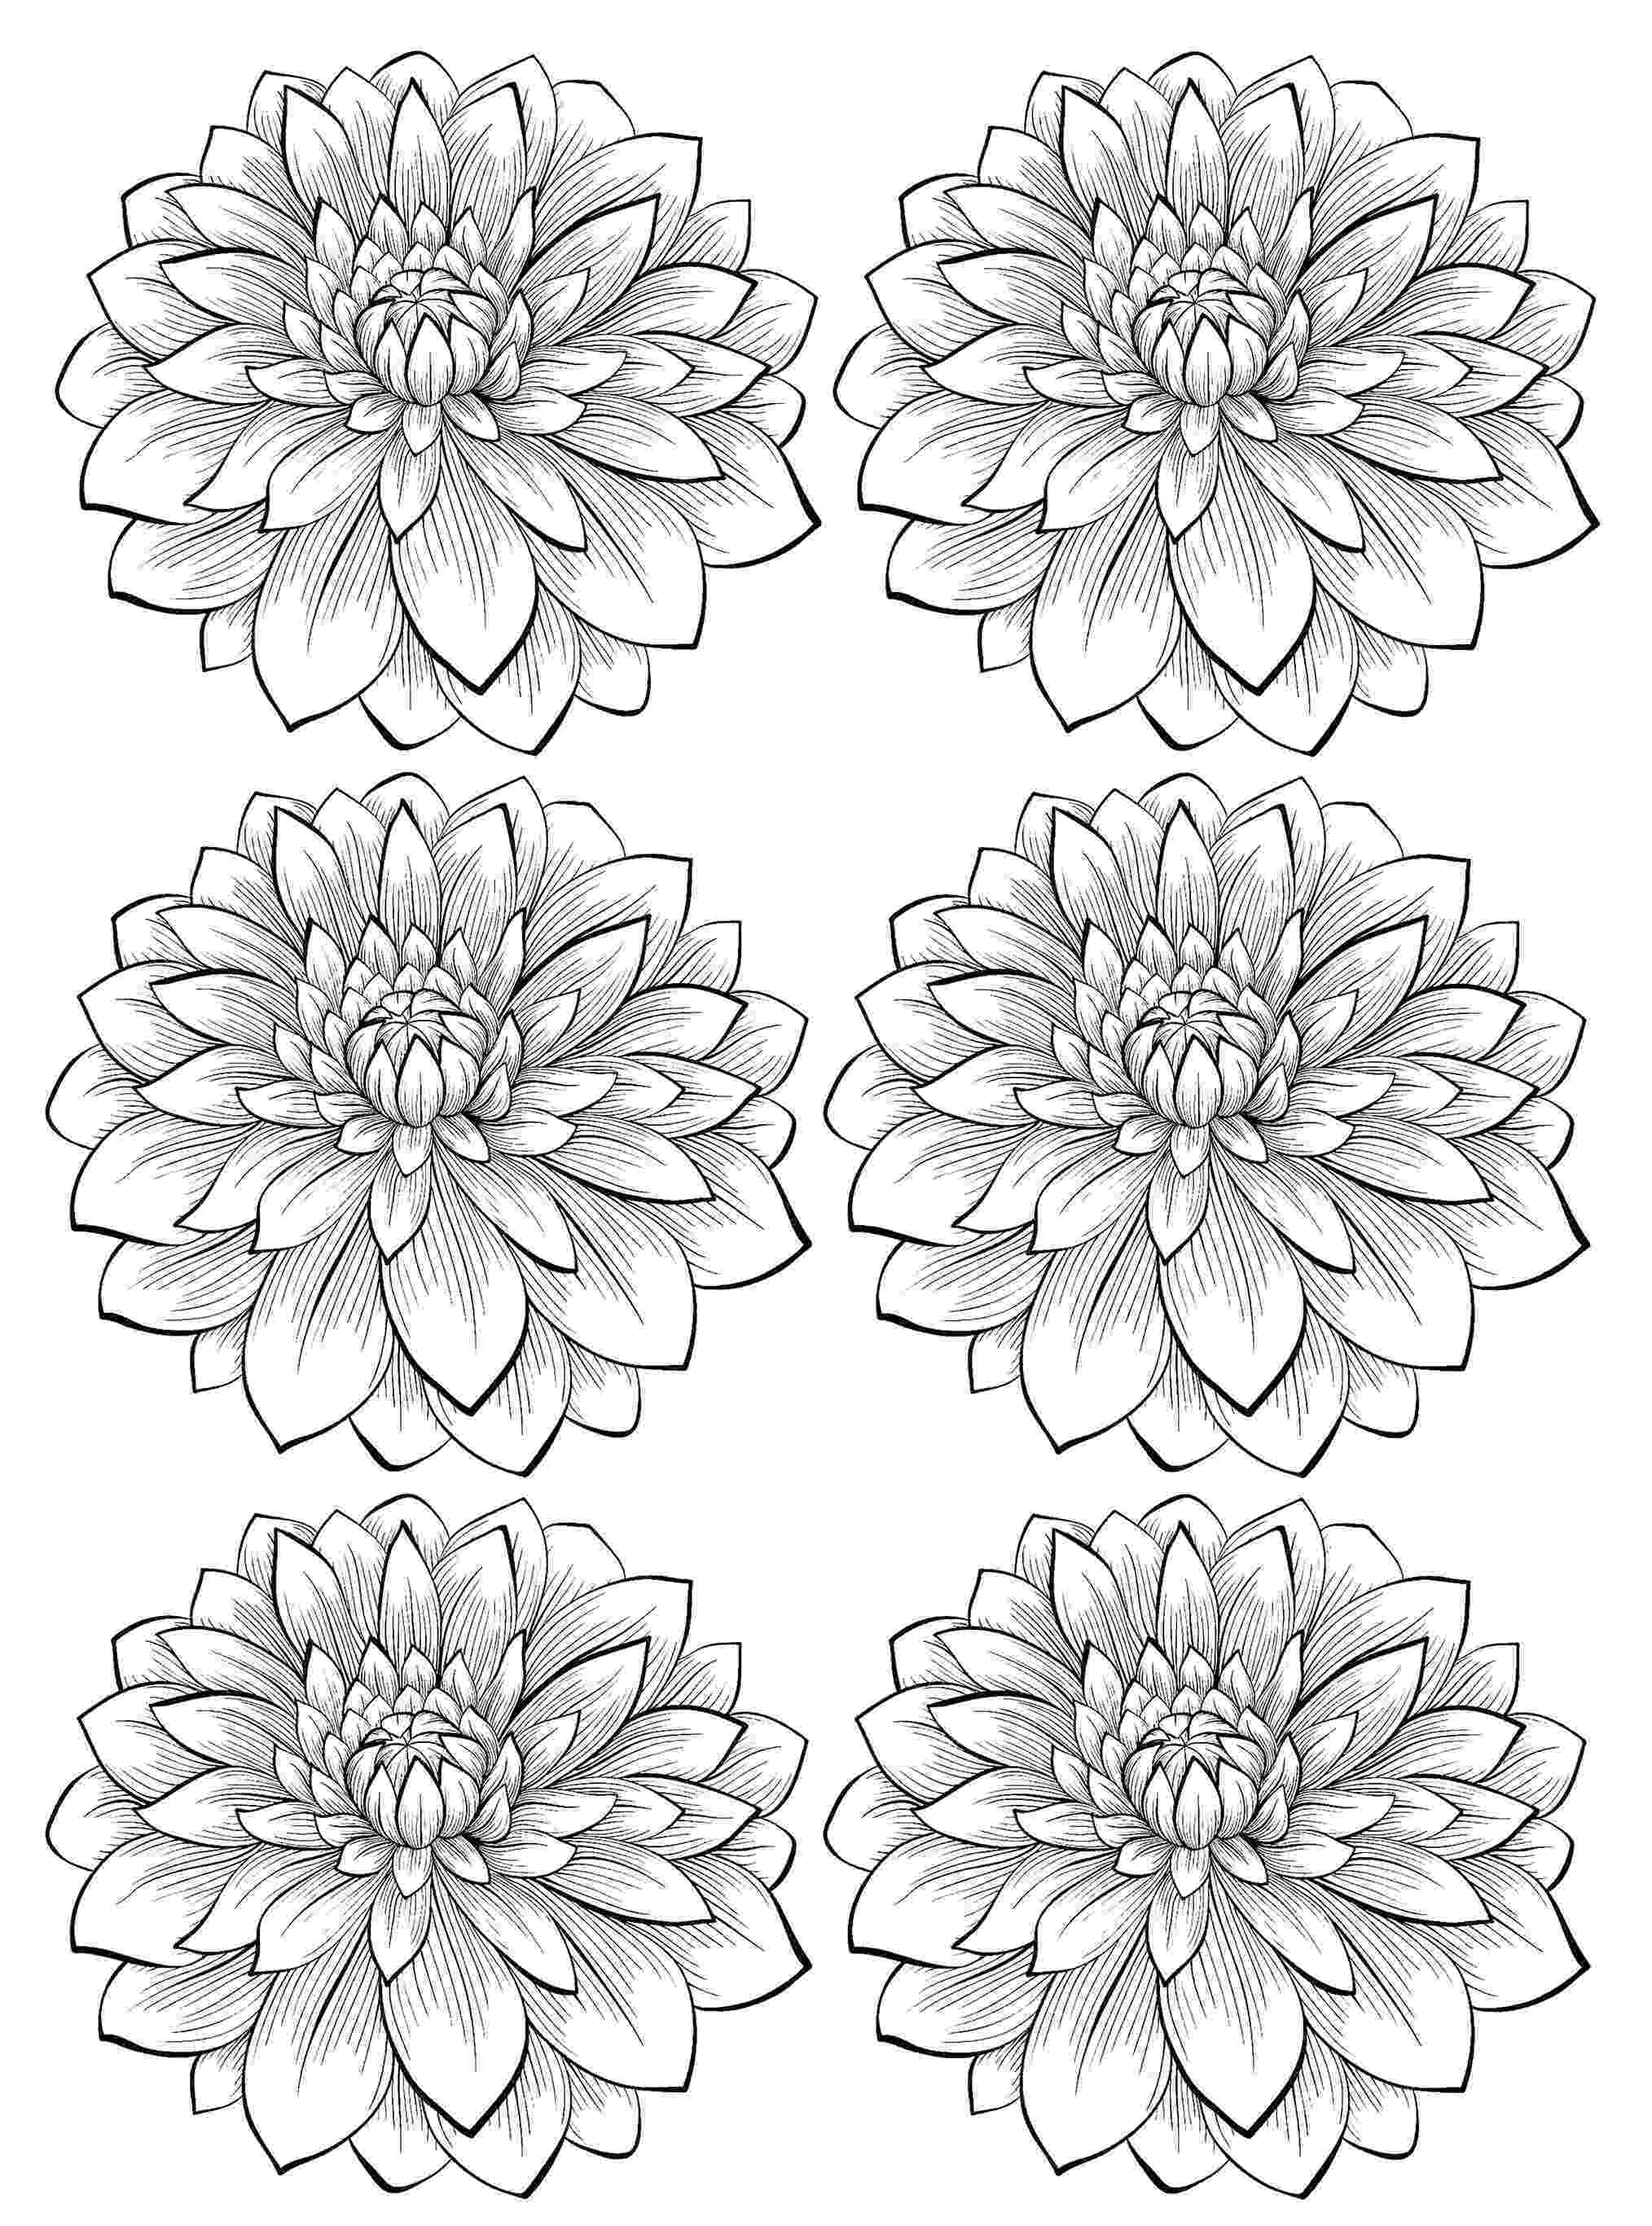 coloring pages for adults to print flowers six dahlia flower flowers adult coloring pages print for to coloring adults pages flowers